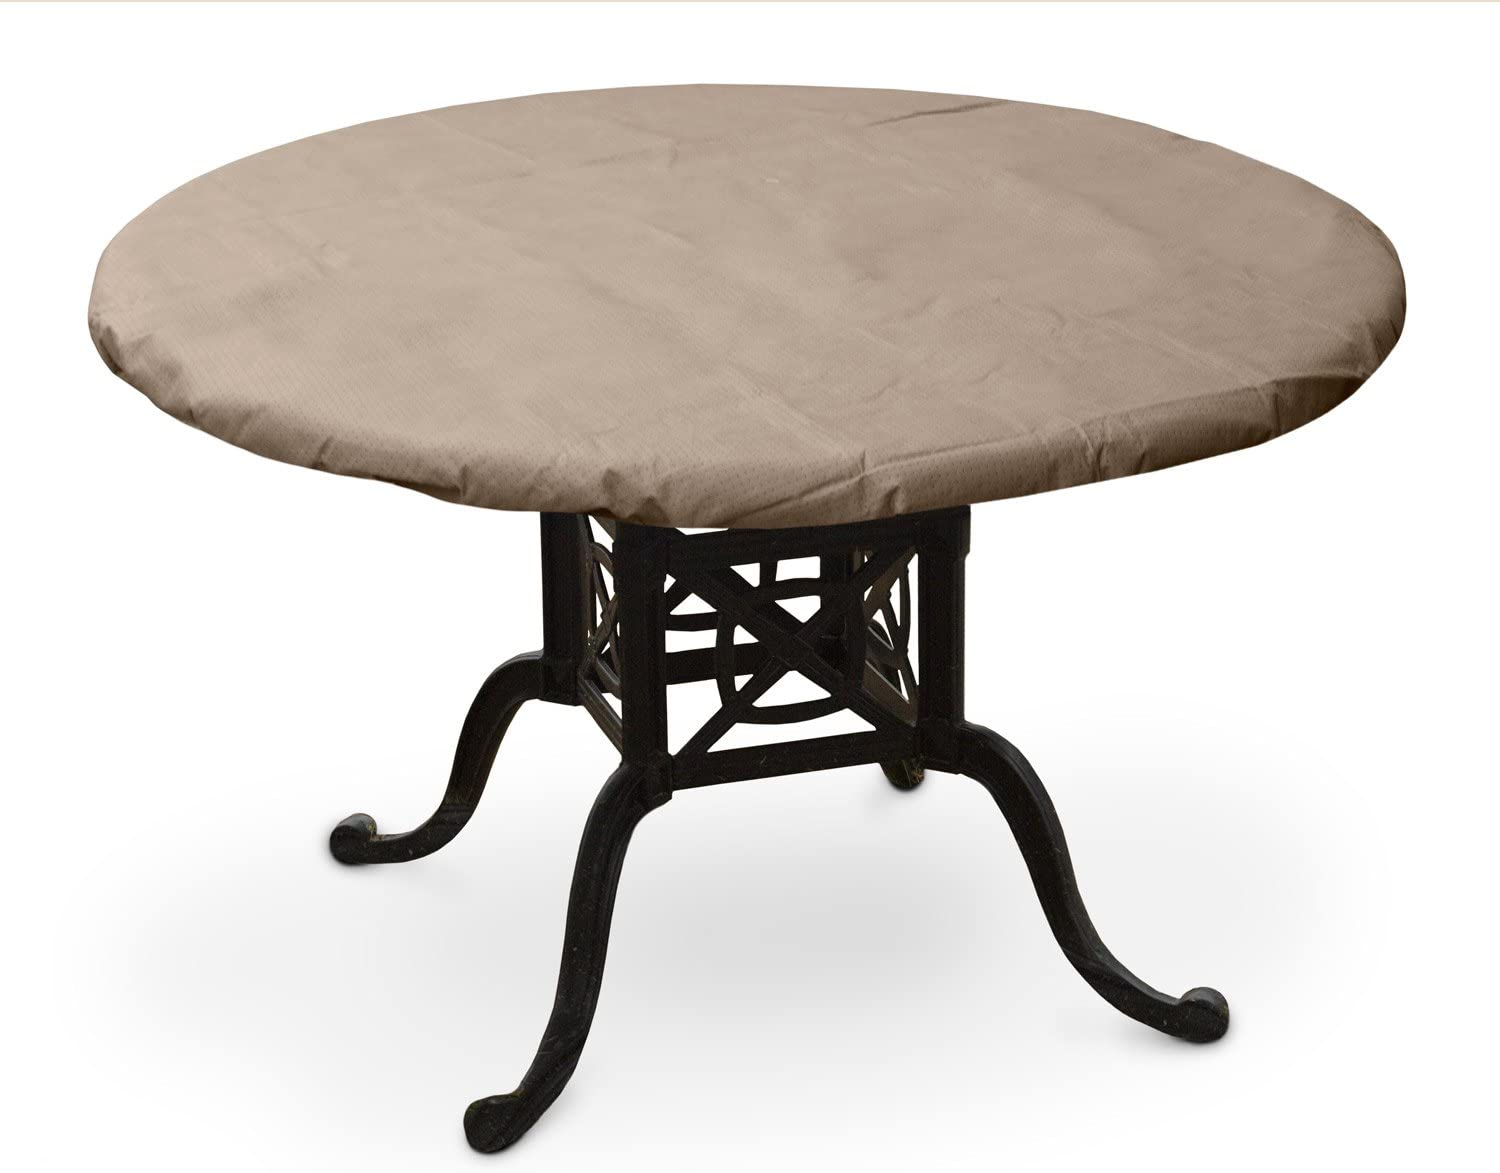 KoverRoos III 37360 32-Inch Round Table Top Cover, 36-Inch Diameter, Taupe